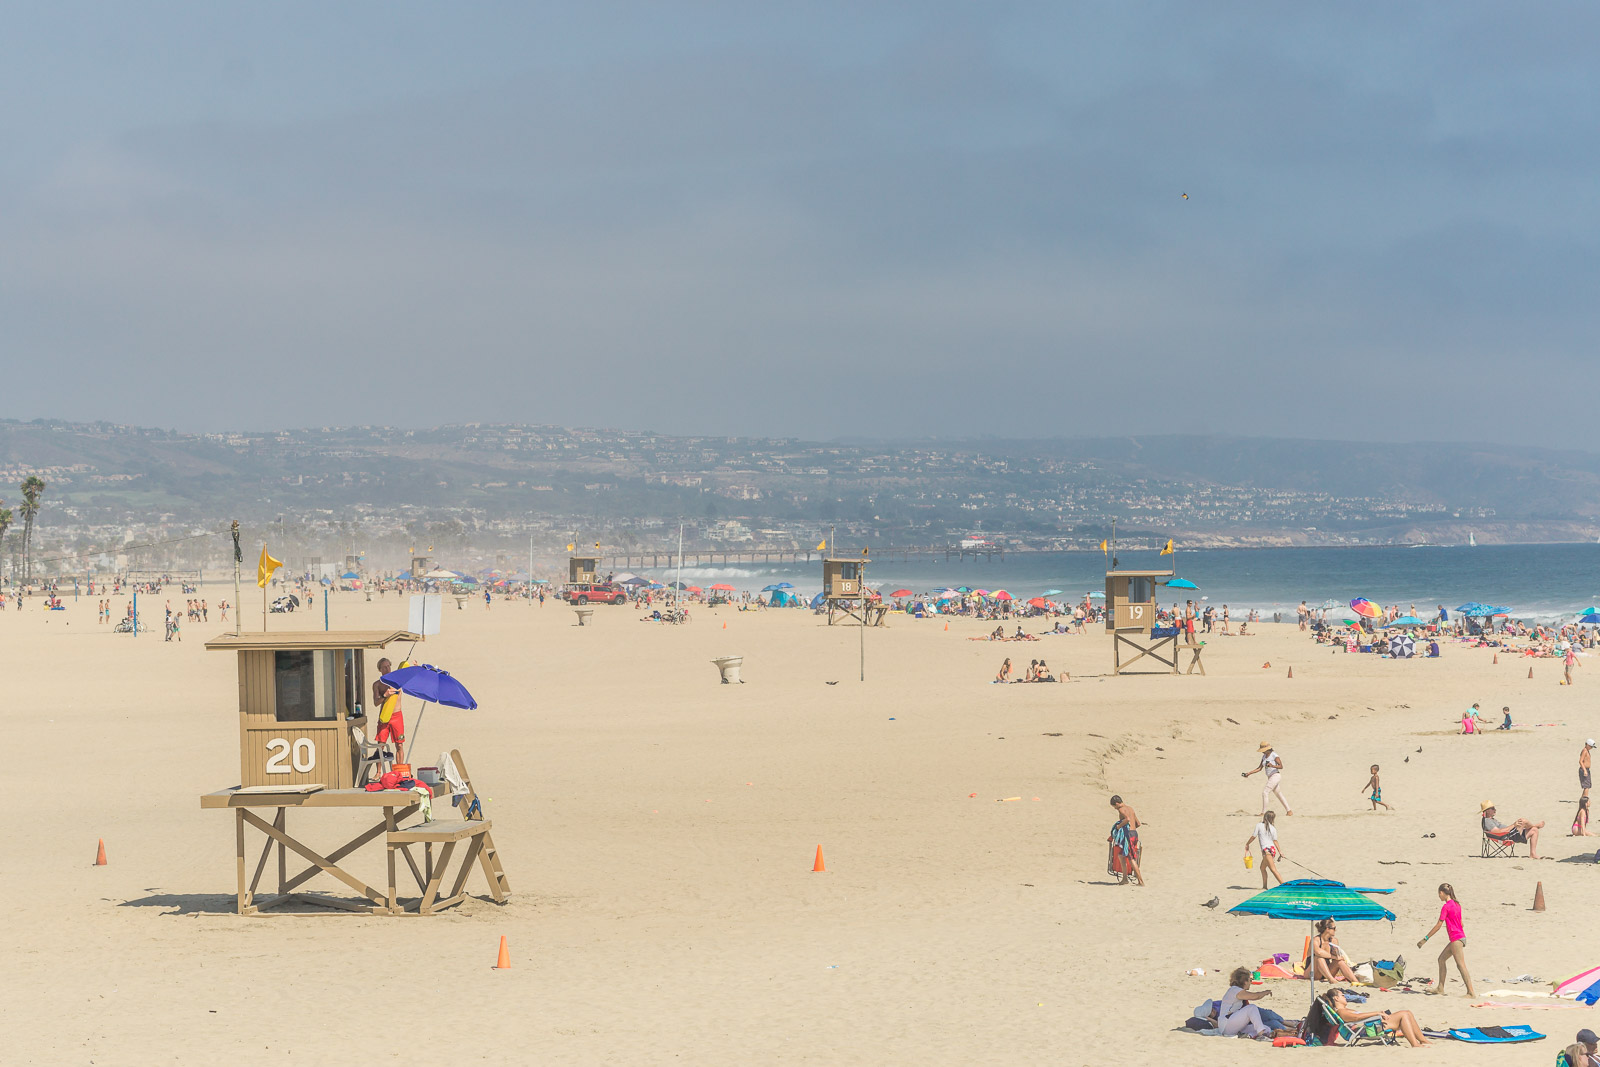 view from Newport Beach pier on a Sunny day overlooking the beach and Ocean